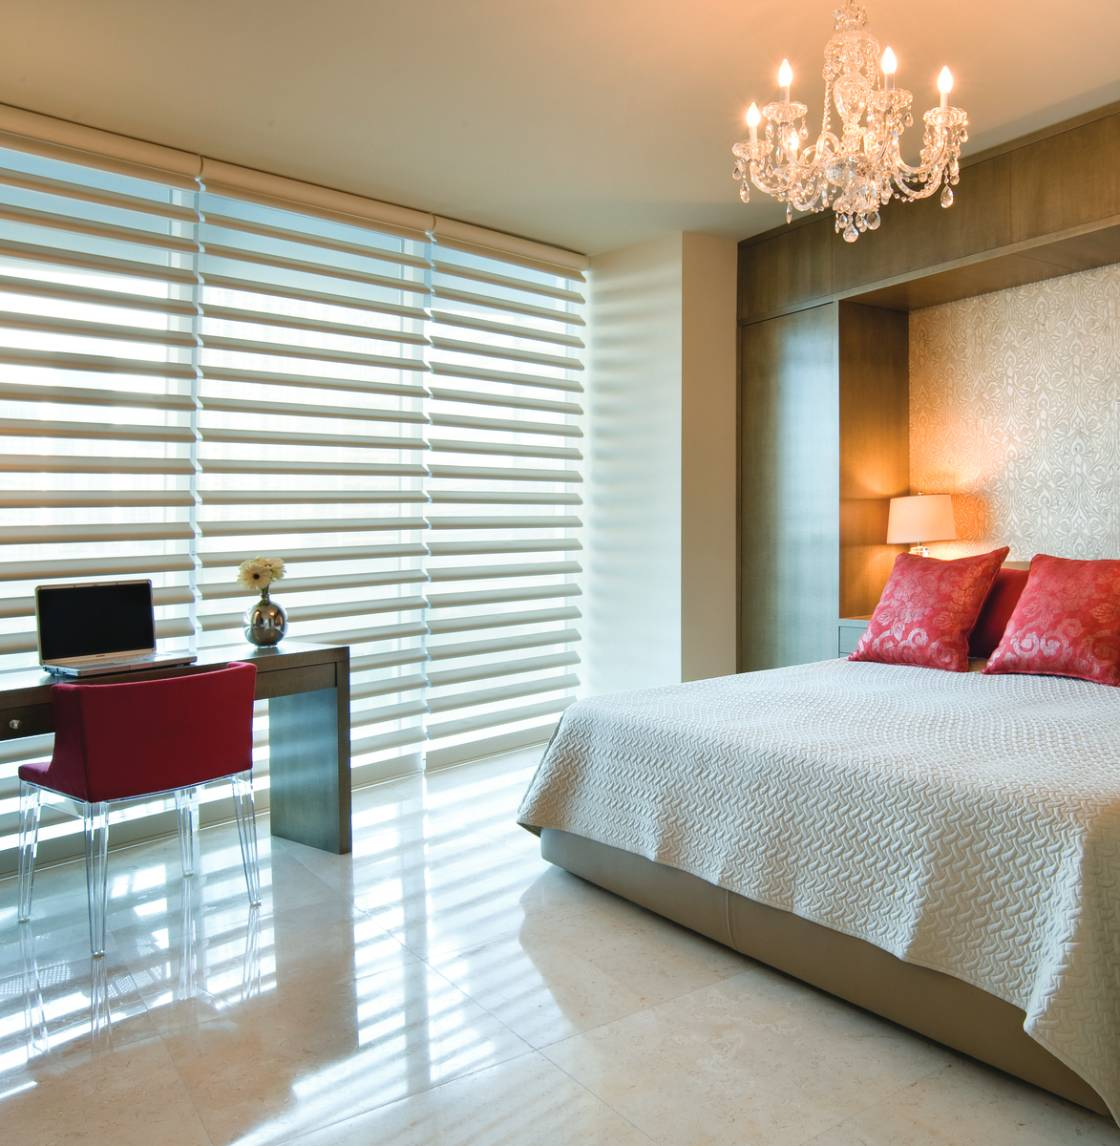 Pirouette® Window Shadings near Fremont, California (CA) with beautiful colors, timeless designs, and more